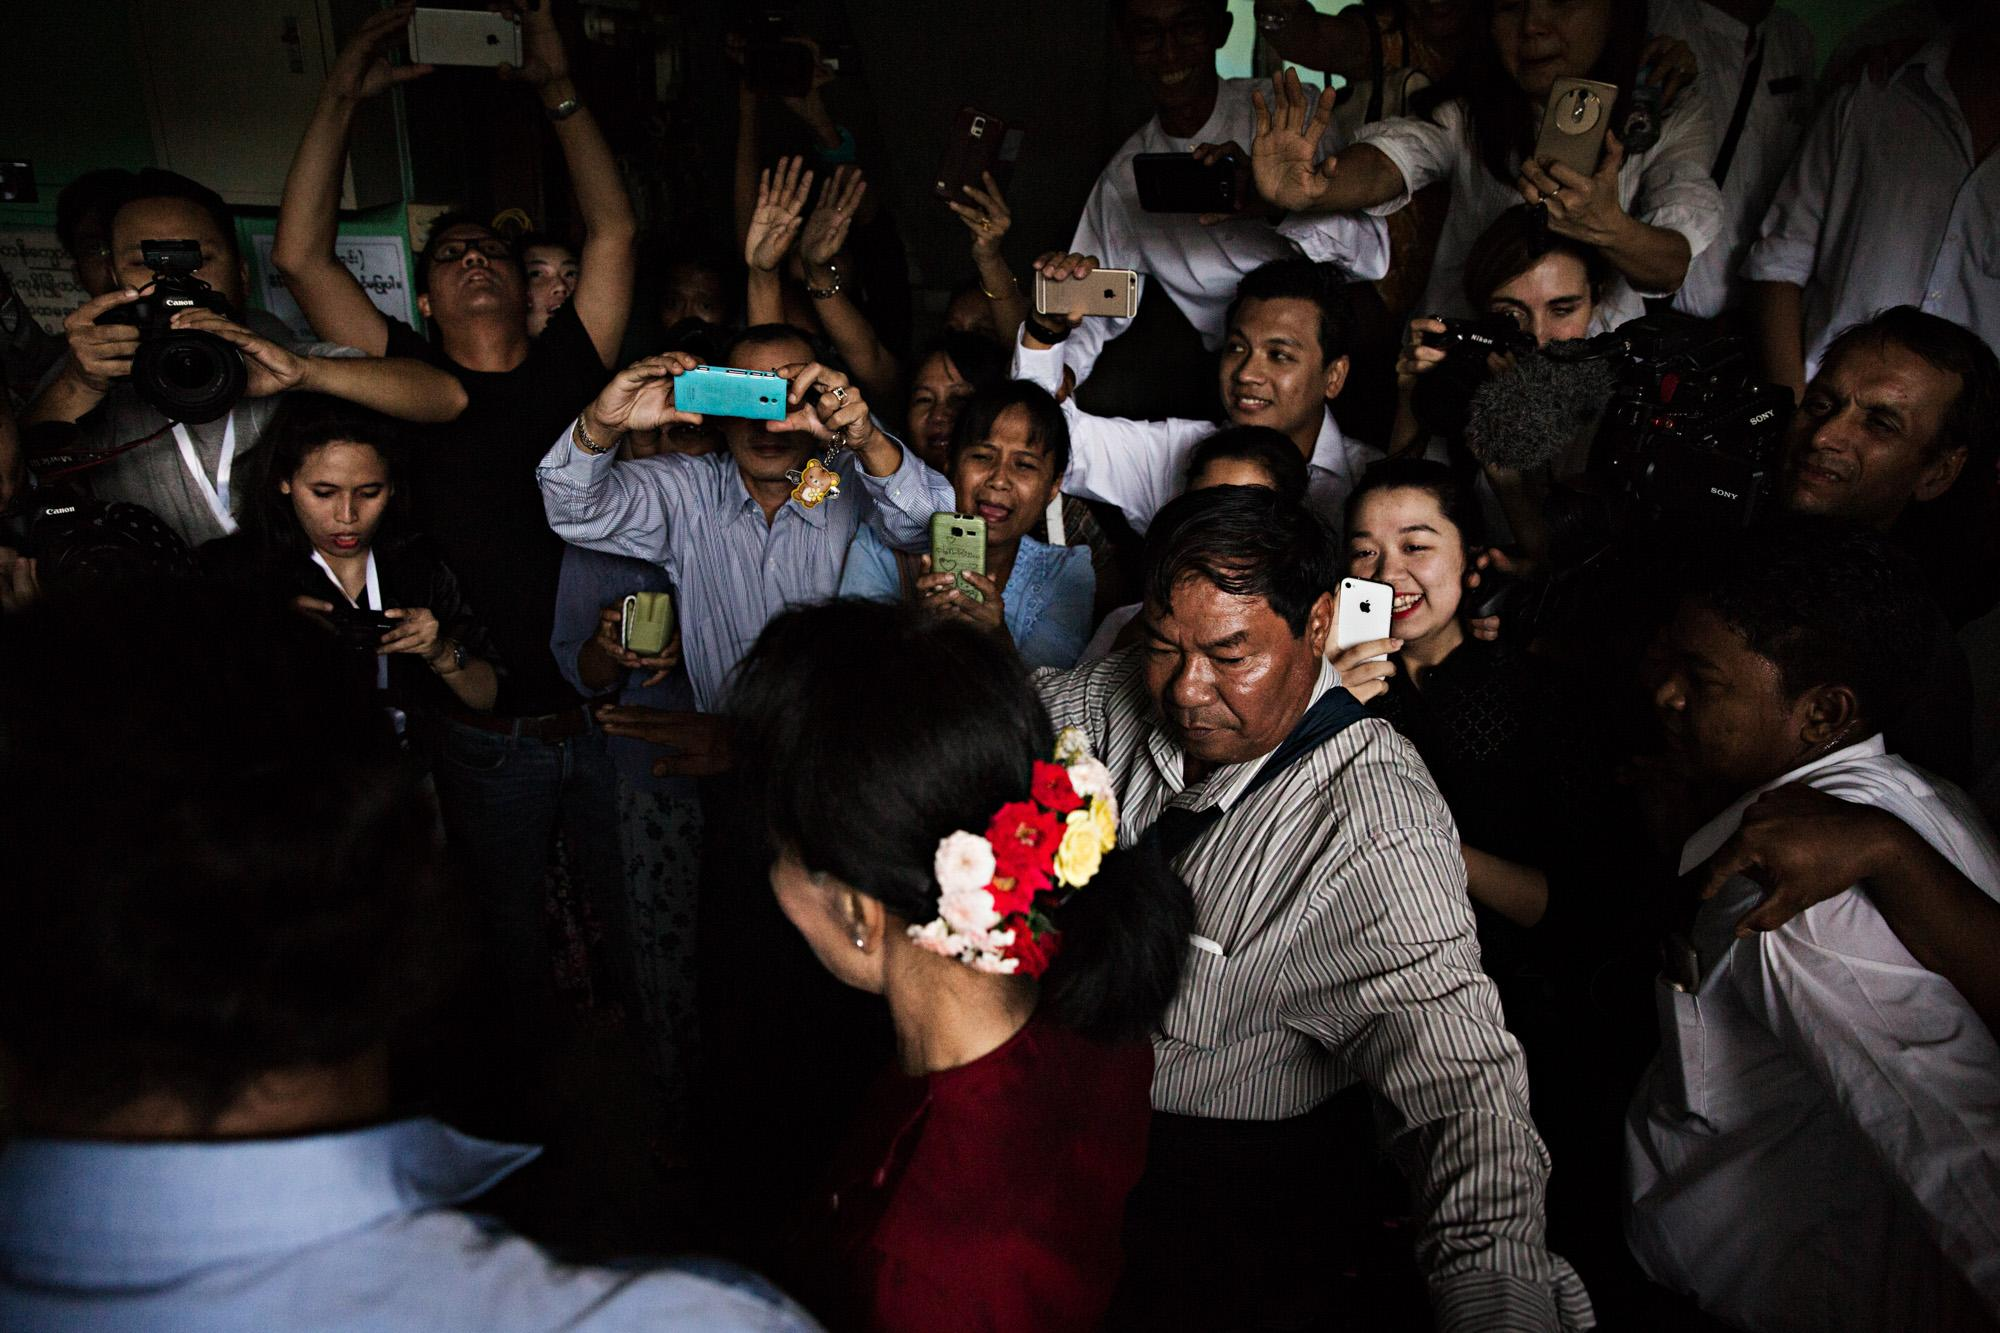 Aung San Suu Kyi (front, red flowers in hair) makes her way through a crowd after casting her vote in the historic 2015 election in Yangon, Myanmar.